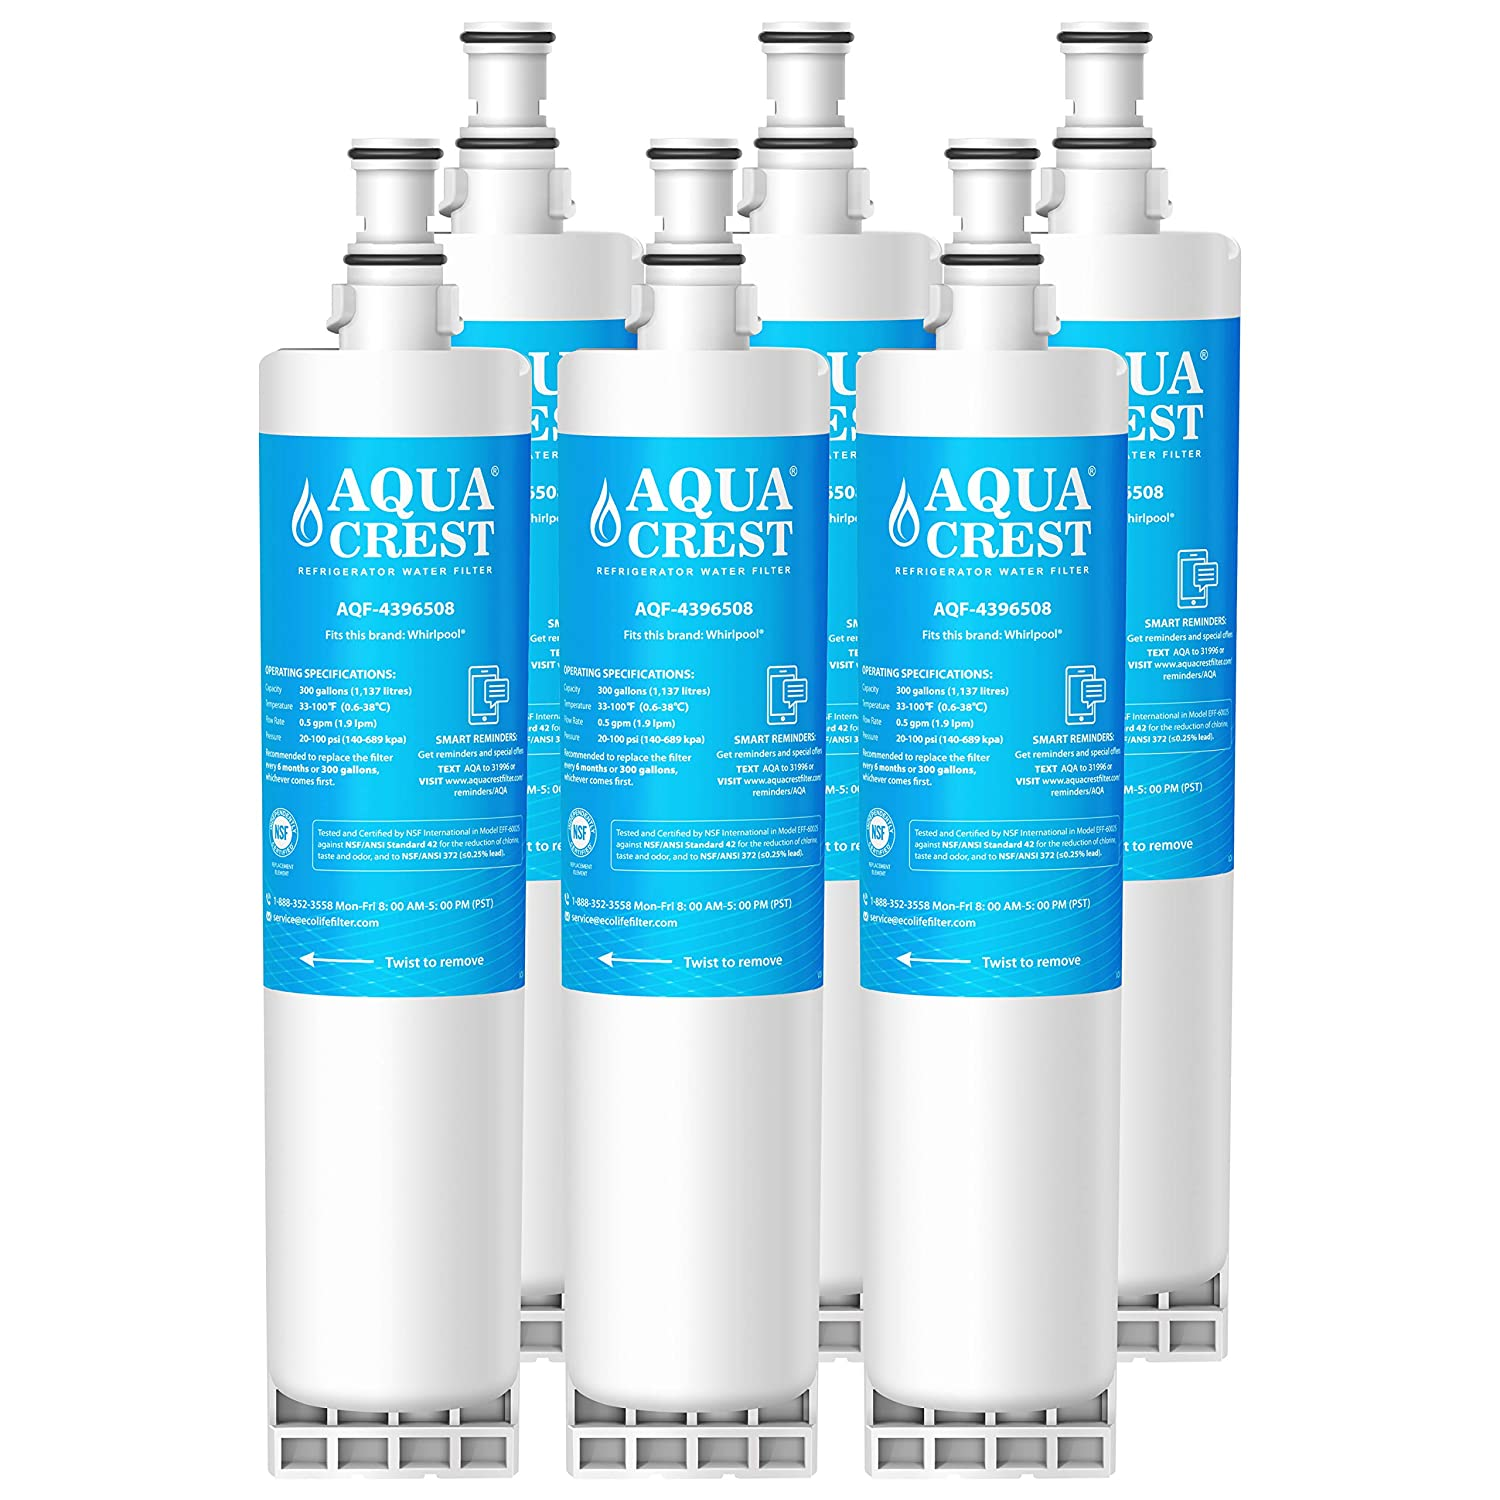 AQUACREST 4396508 Refrigerator Water Filter, NSF 42 reduces chlorine   Compatible with Whirlpool 4396508, 4396510, Kenmore 46-9010, EveryDrop  Filter 5,